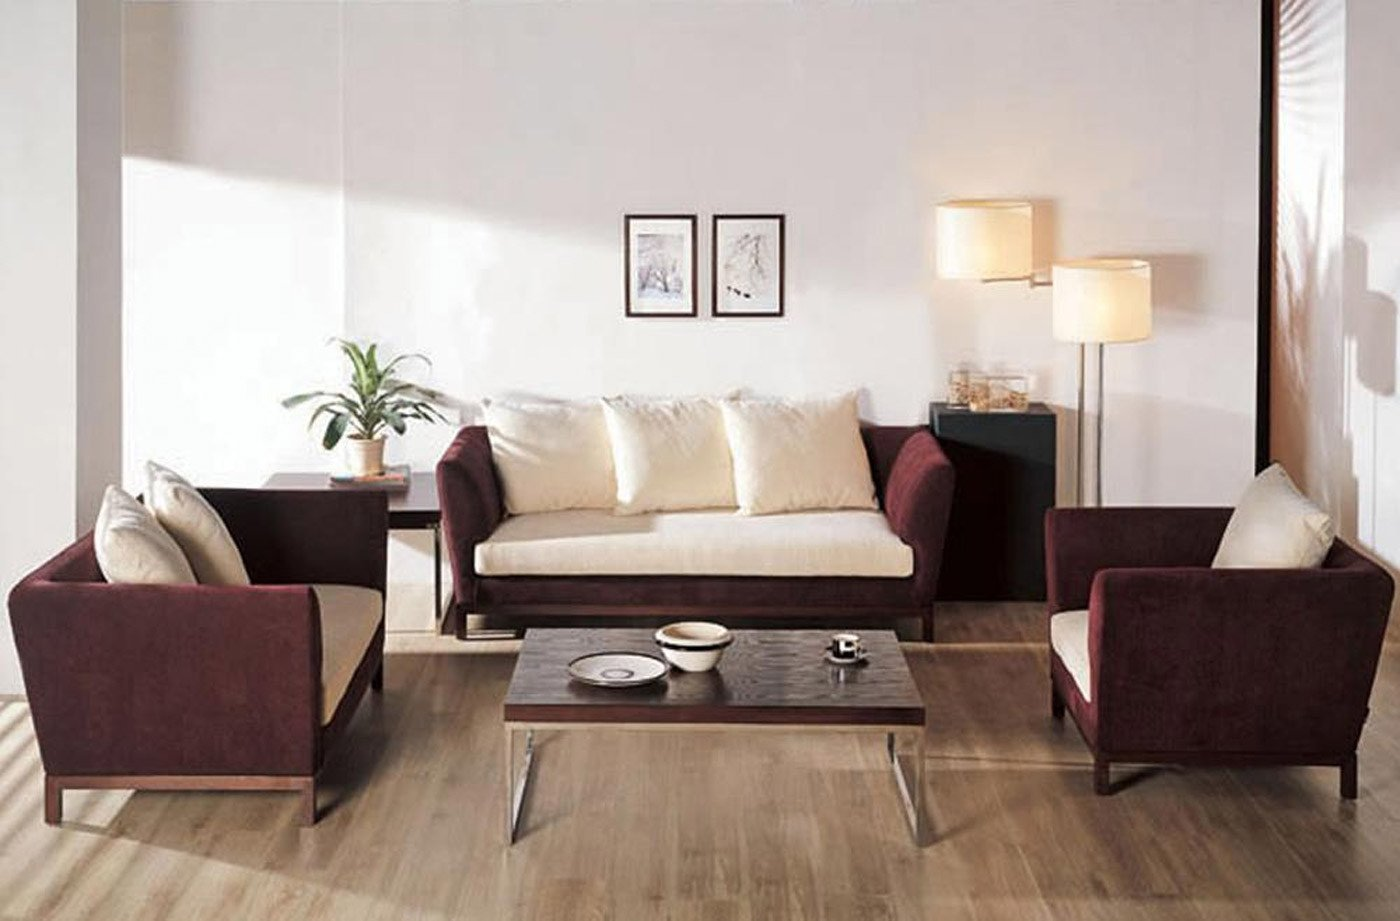 Living Room Ideas Furniture Best Of Find Suitable Living Room Furniture with Your Style